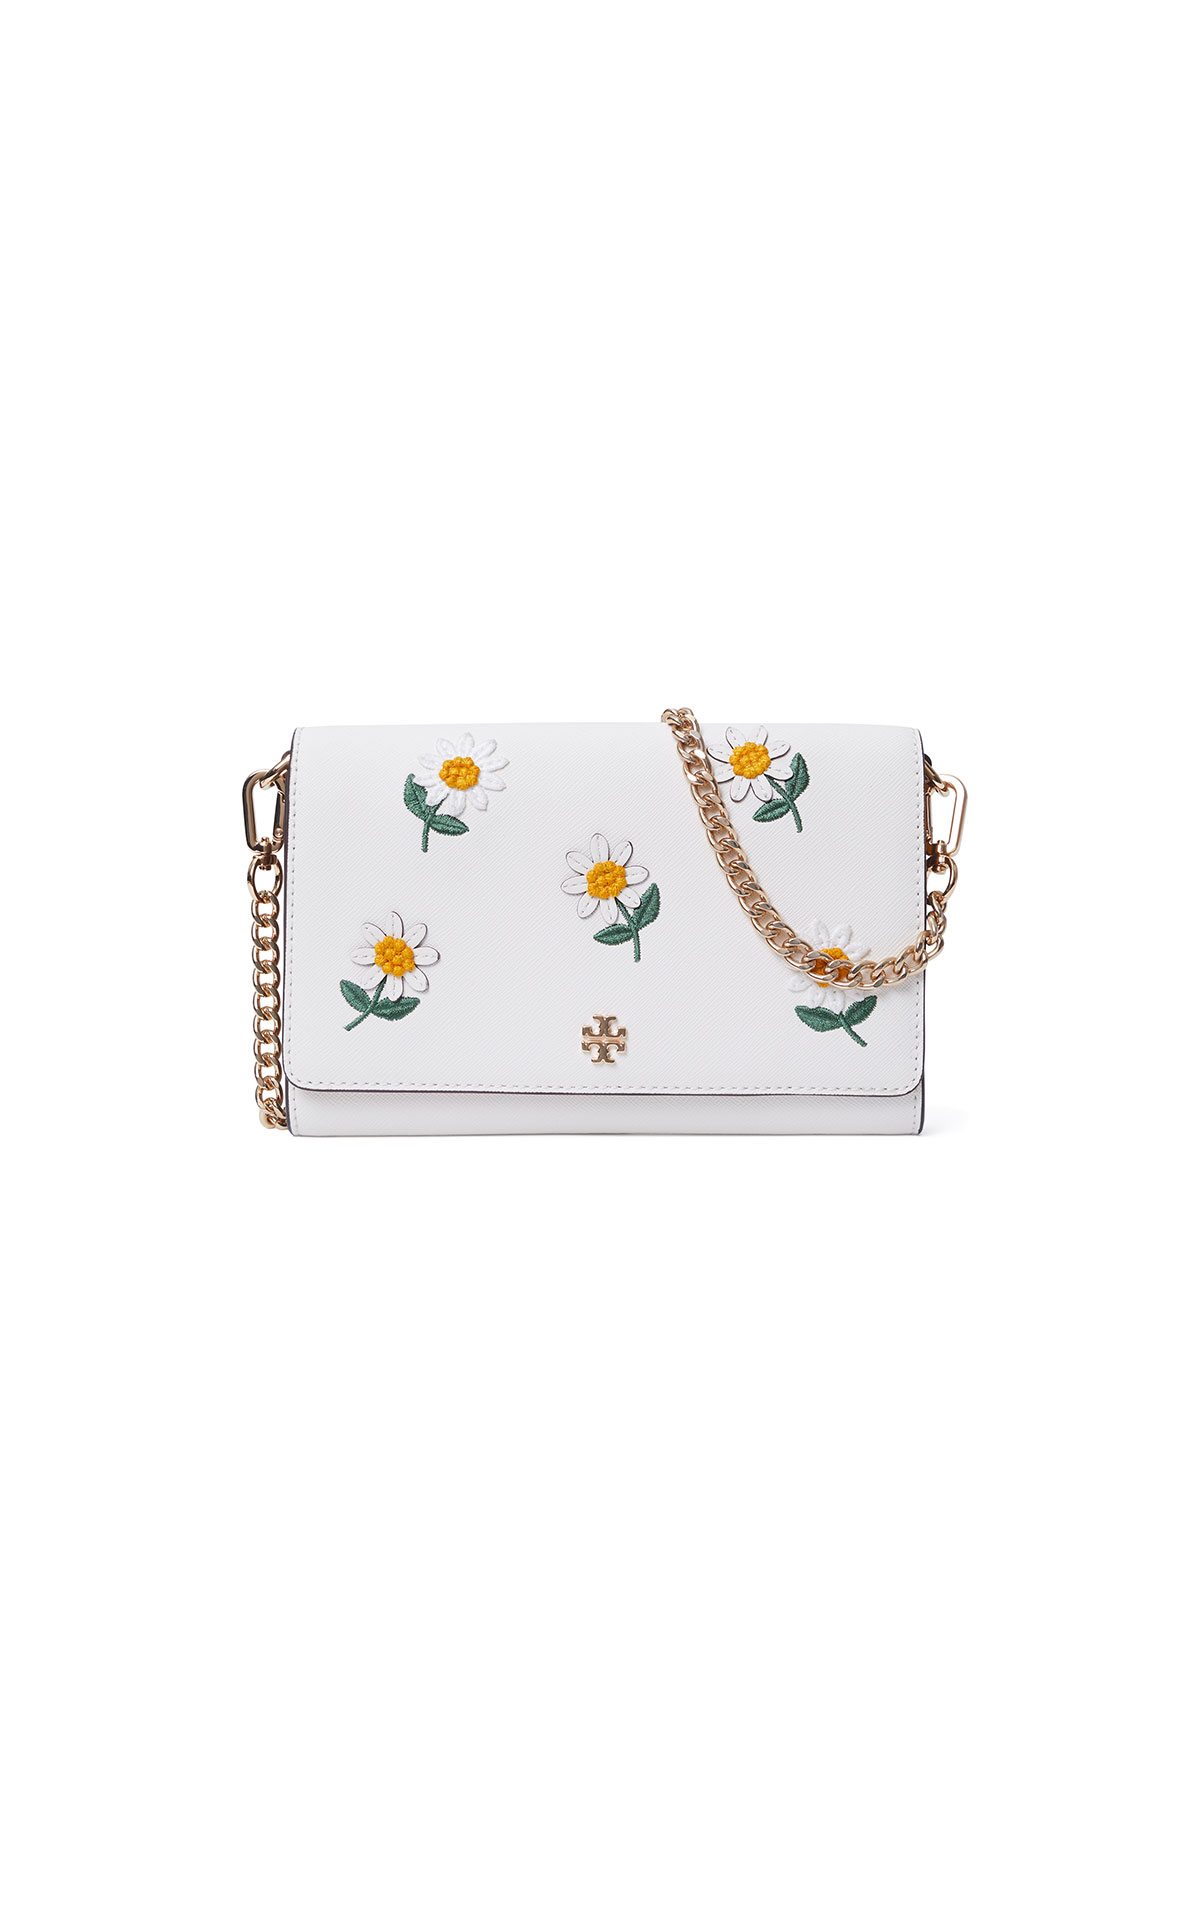 Tory Burch Emerson Daisy Applique Chain Wallet at The Bicester Village Shopping Collection